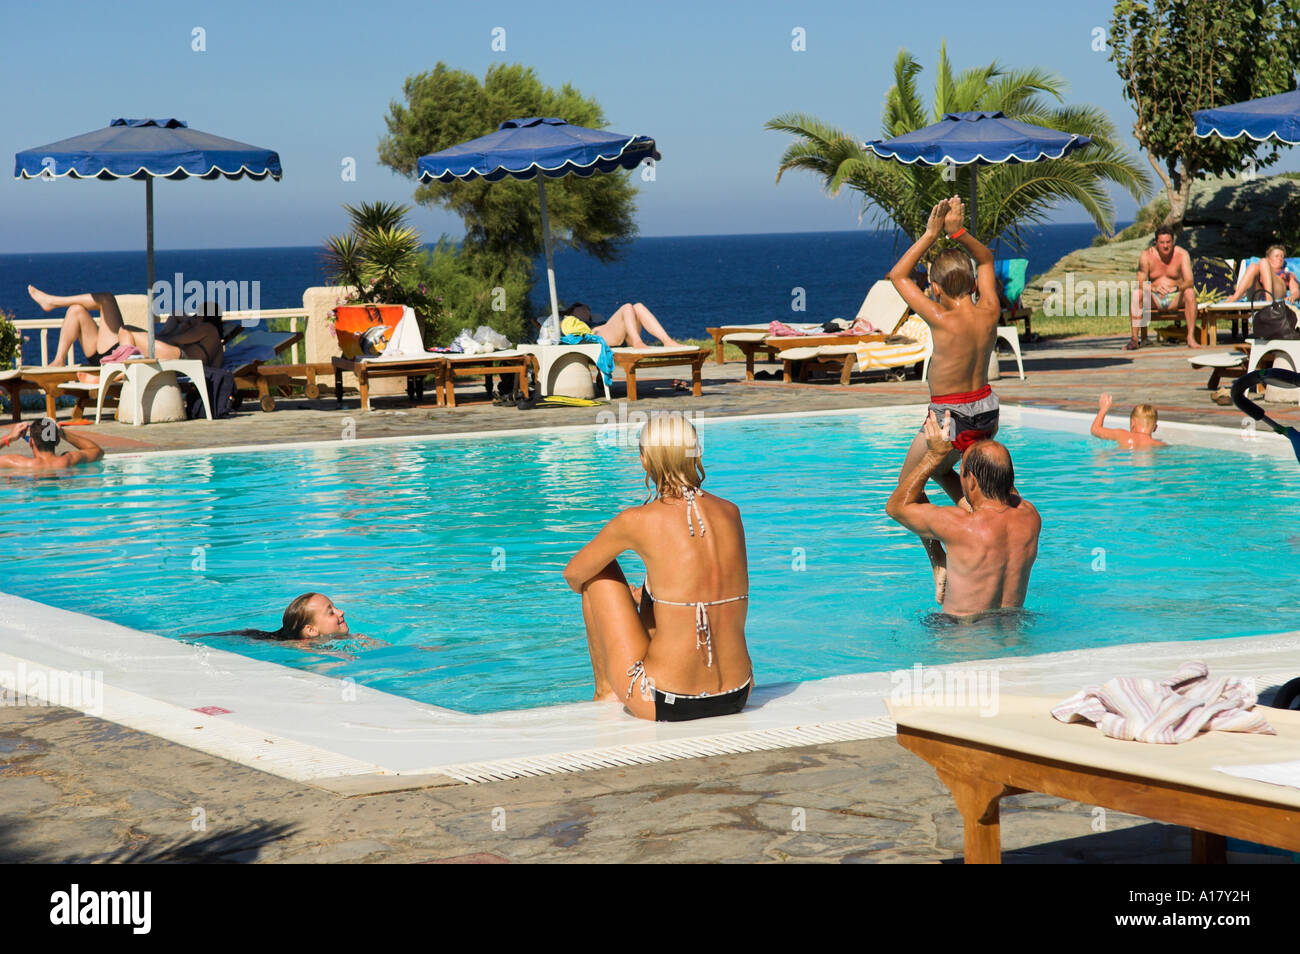 Hotel pool with people  People at hotel pool overlooking sea Stock Photo: 10172872 - Alamy